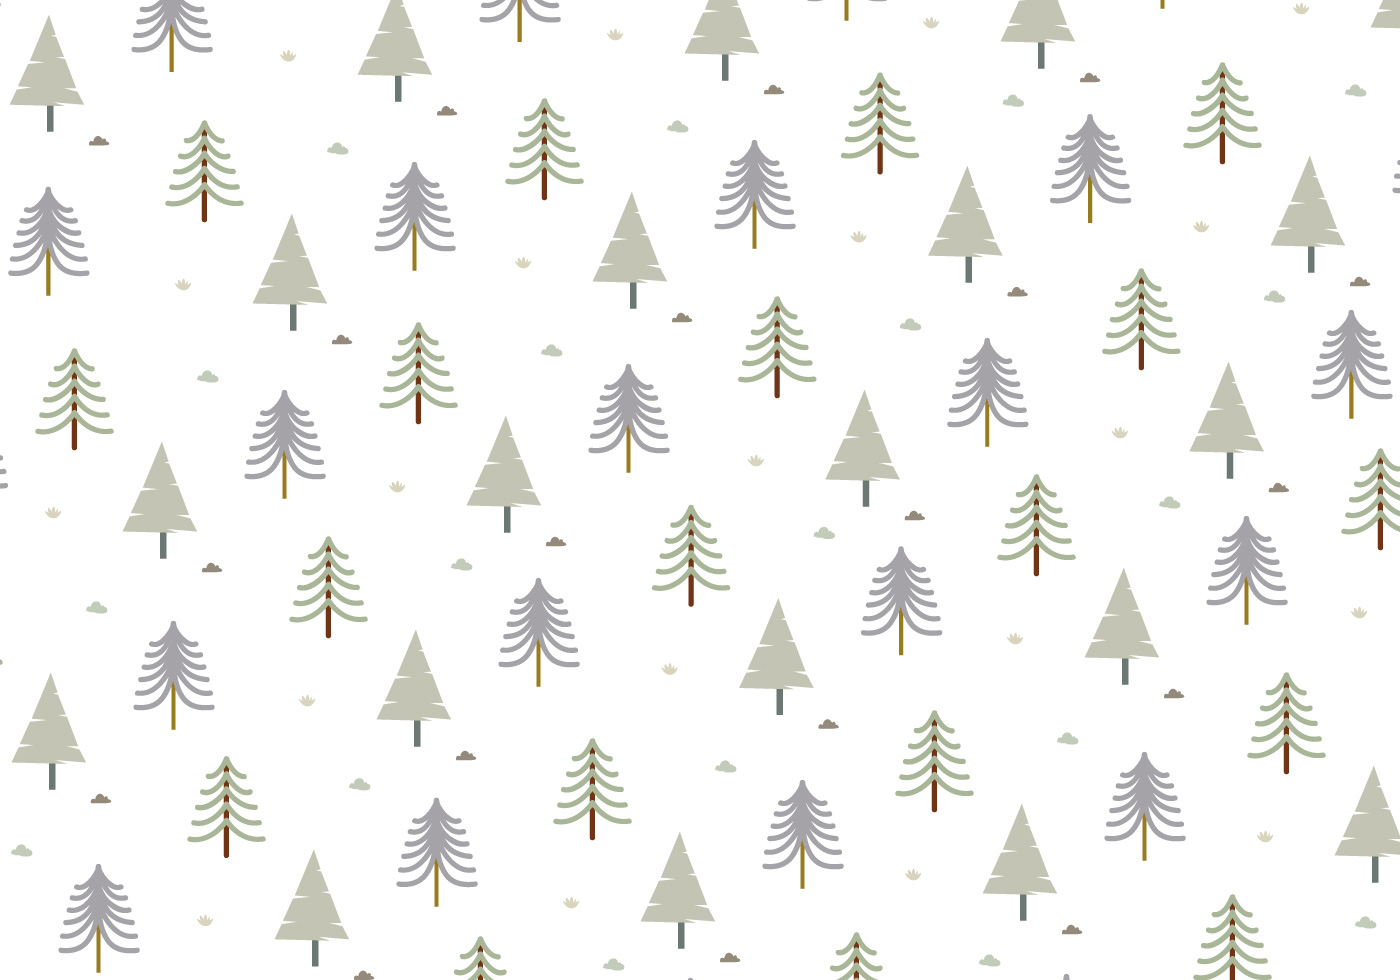 Tree Pattern Background Vector Download Free Vector Art